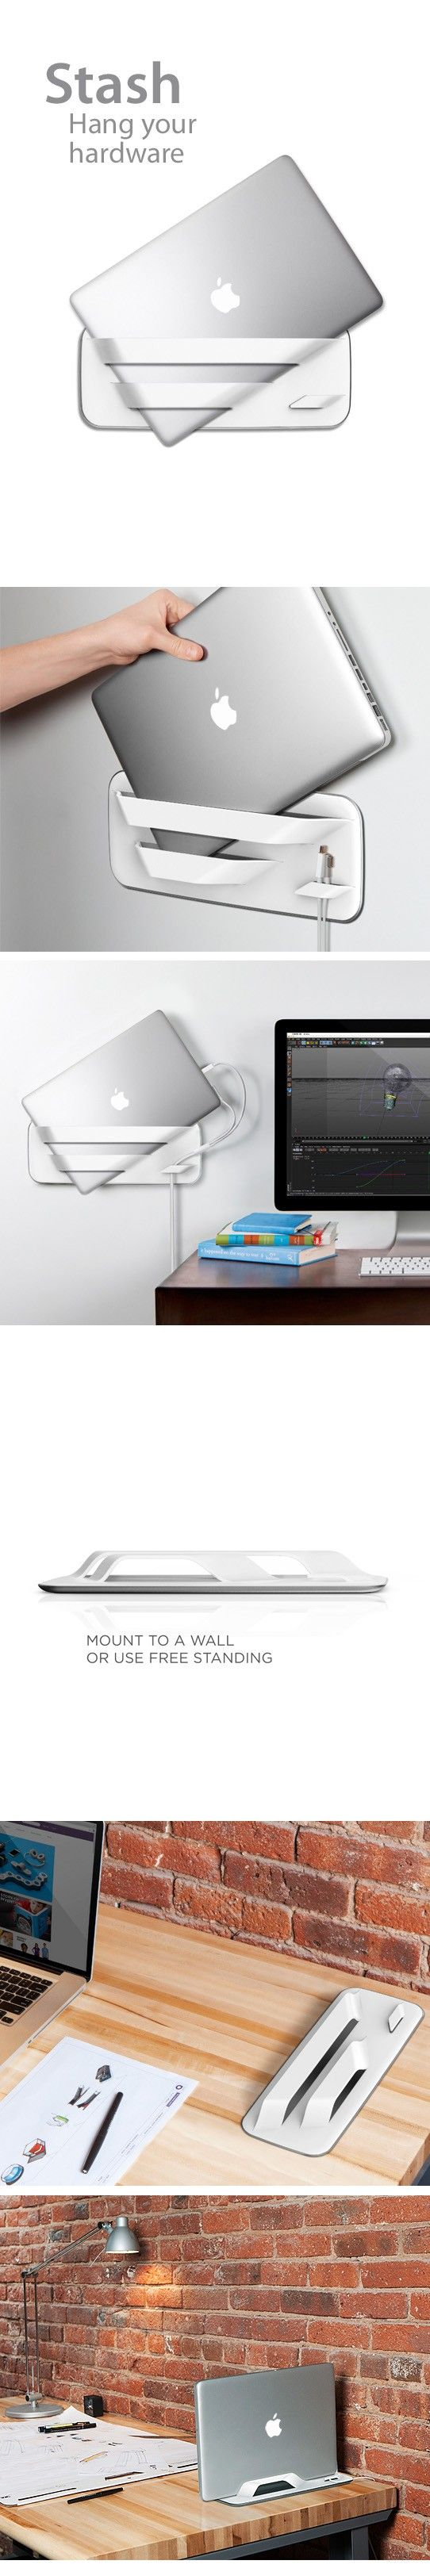 Stash: Hang your hardware // Stylish MacBook Pro Wall Mount / TechNews24h.com